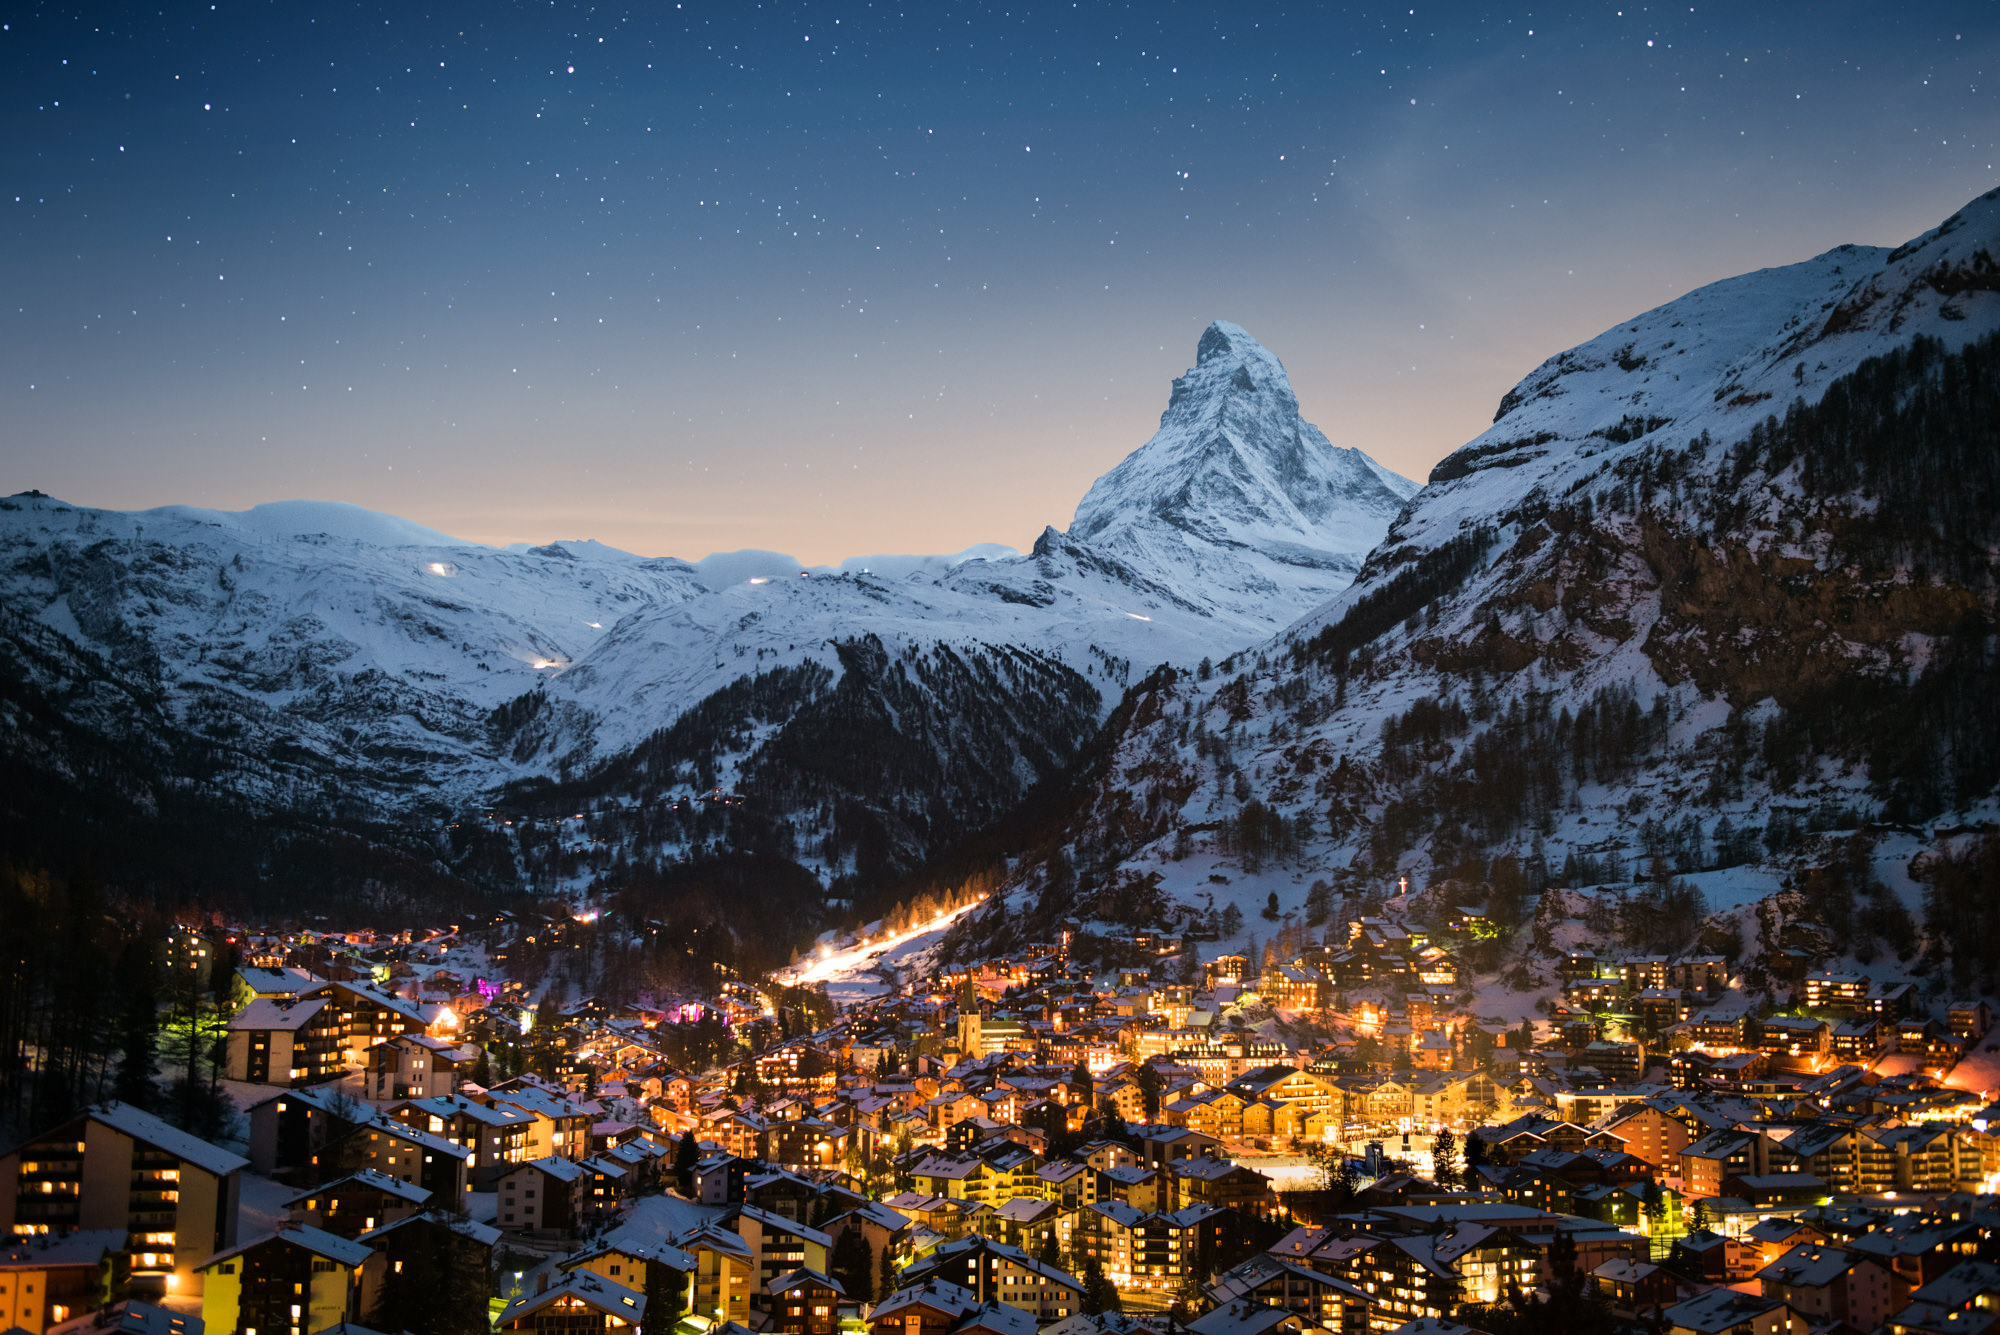 A snowy lit up town in the mountains at dusk